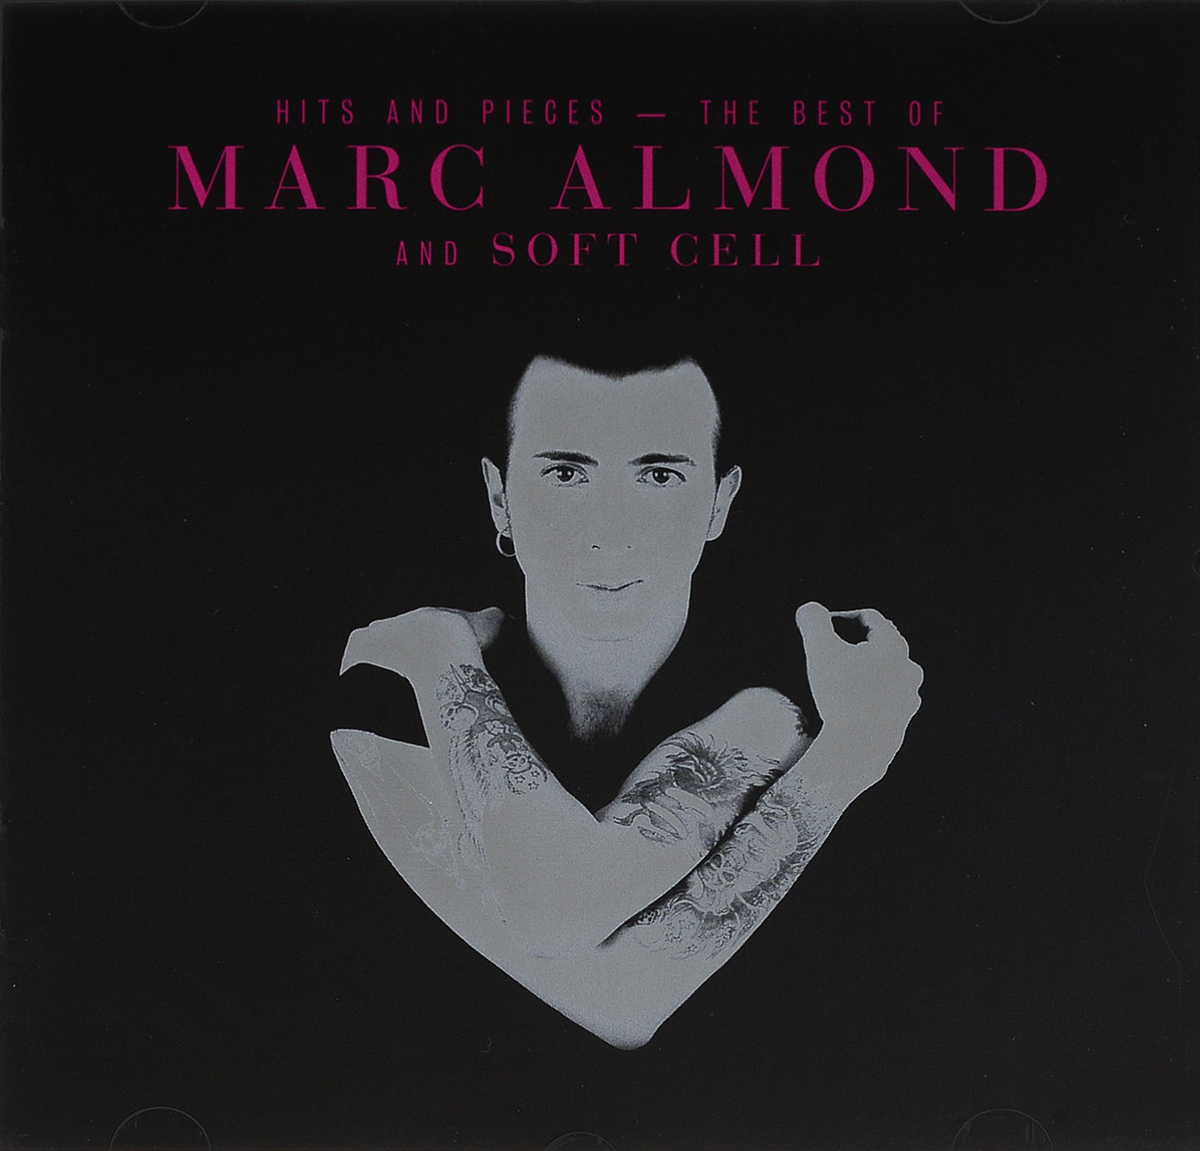 Марк Элмонд,Soft Cell Marc Almond, Soft Cell. Hits and Pieces - The Best Of марк ронсон super karaoke hits 2015